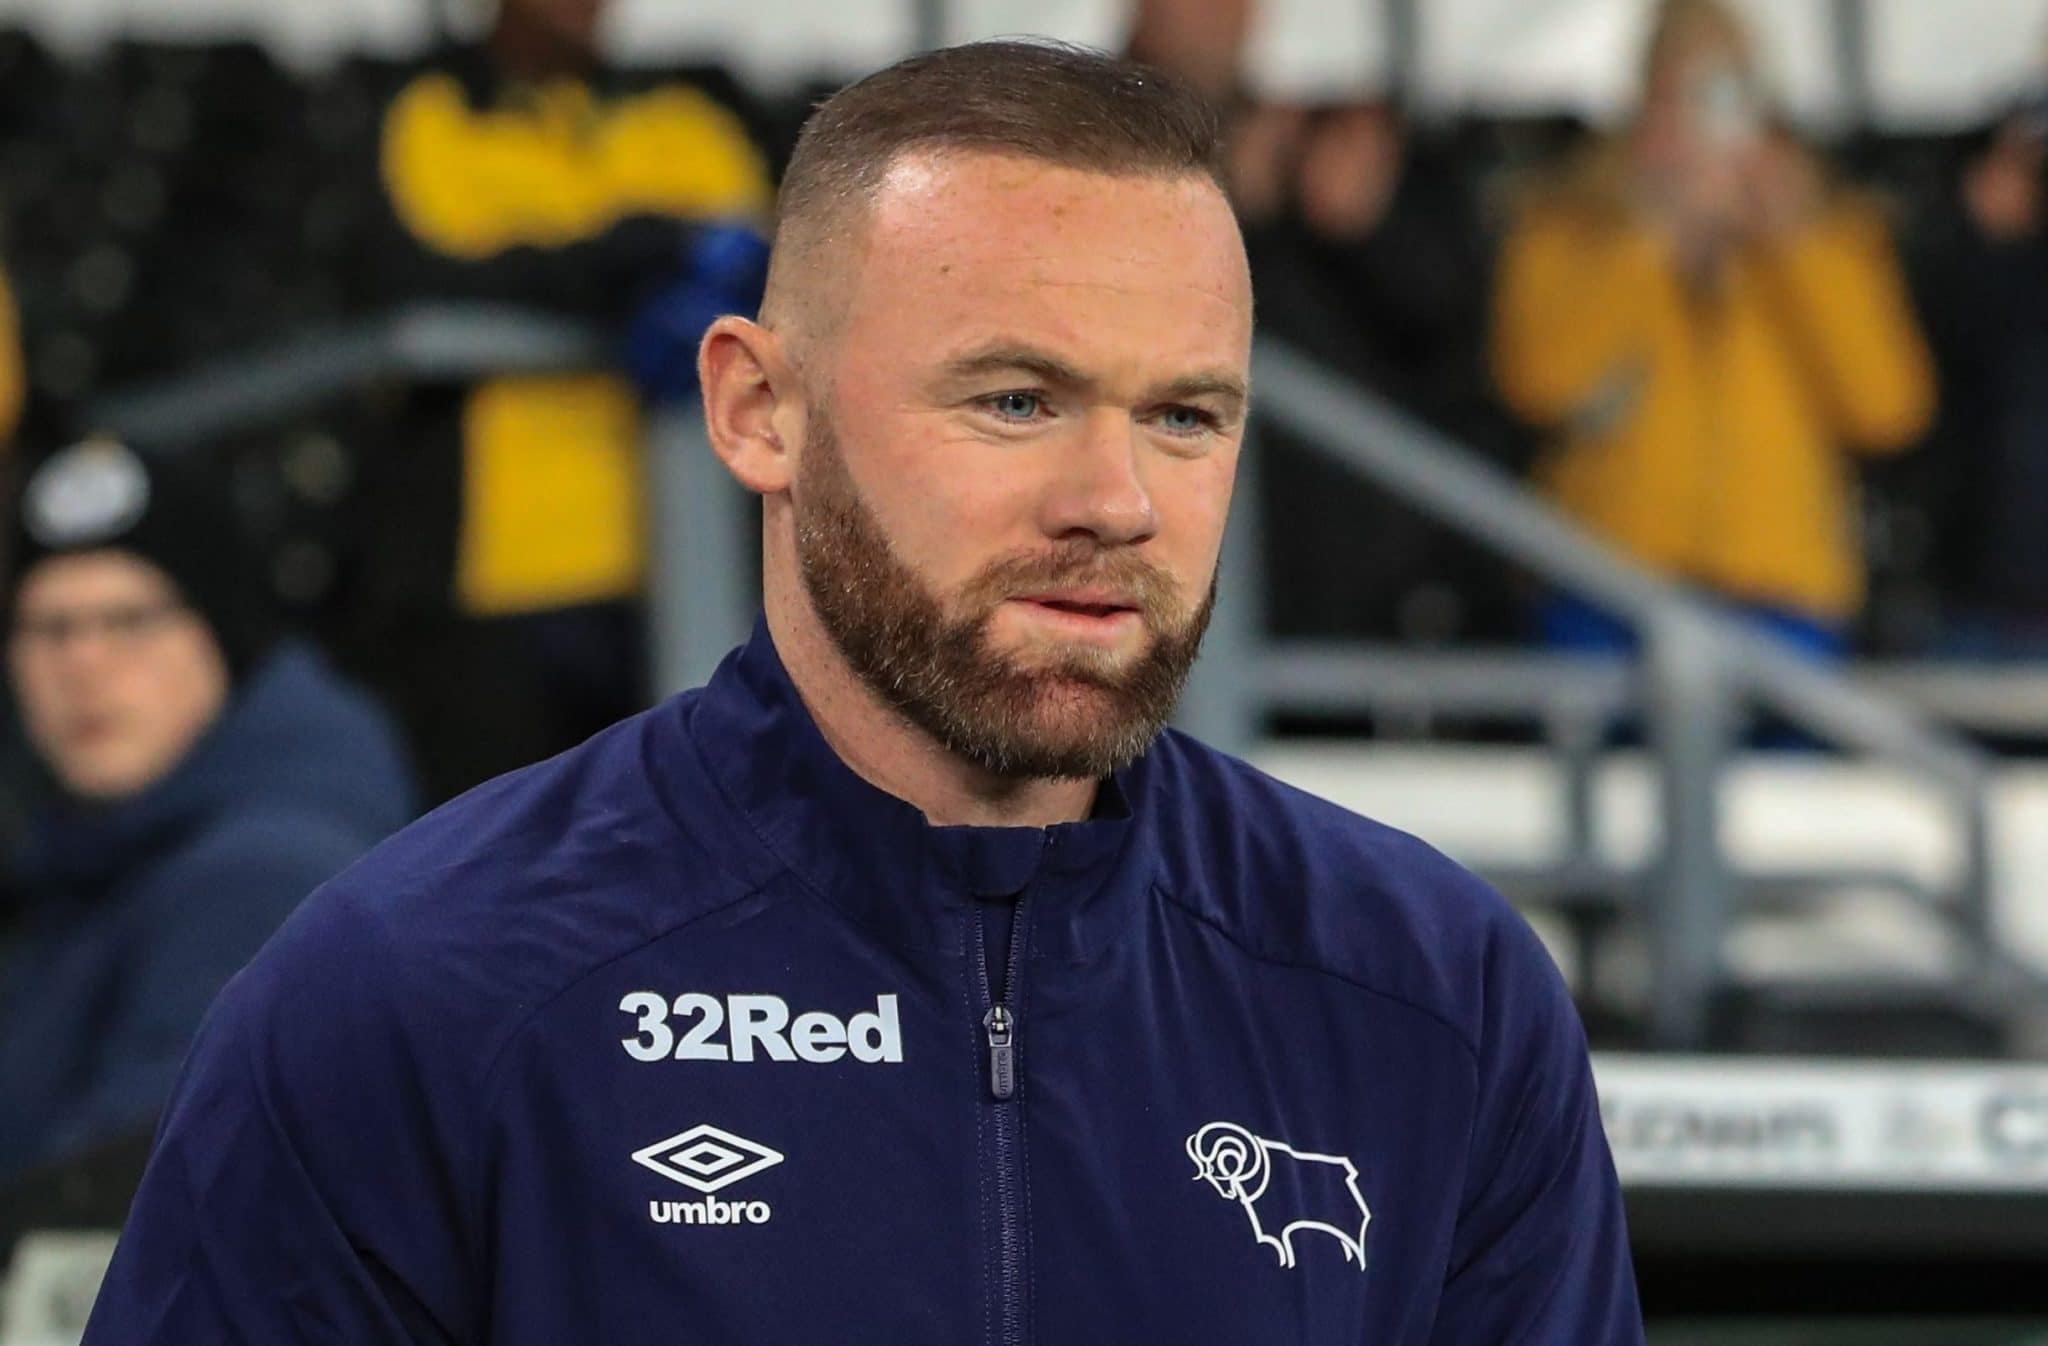 epl-wayne-rooney-reacts-to-sergio-aguero-leaving-manchester-city.jpg